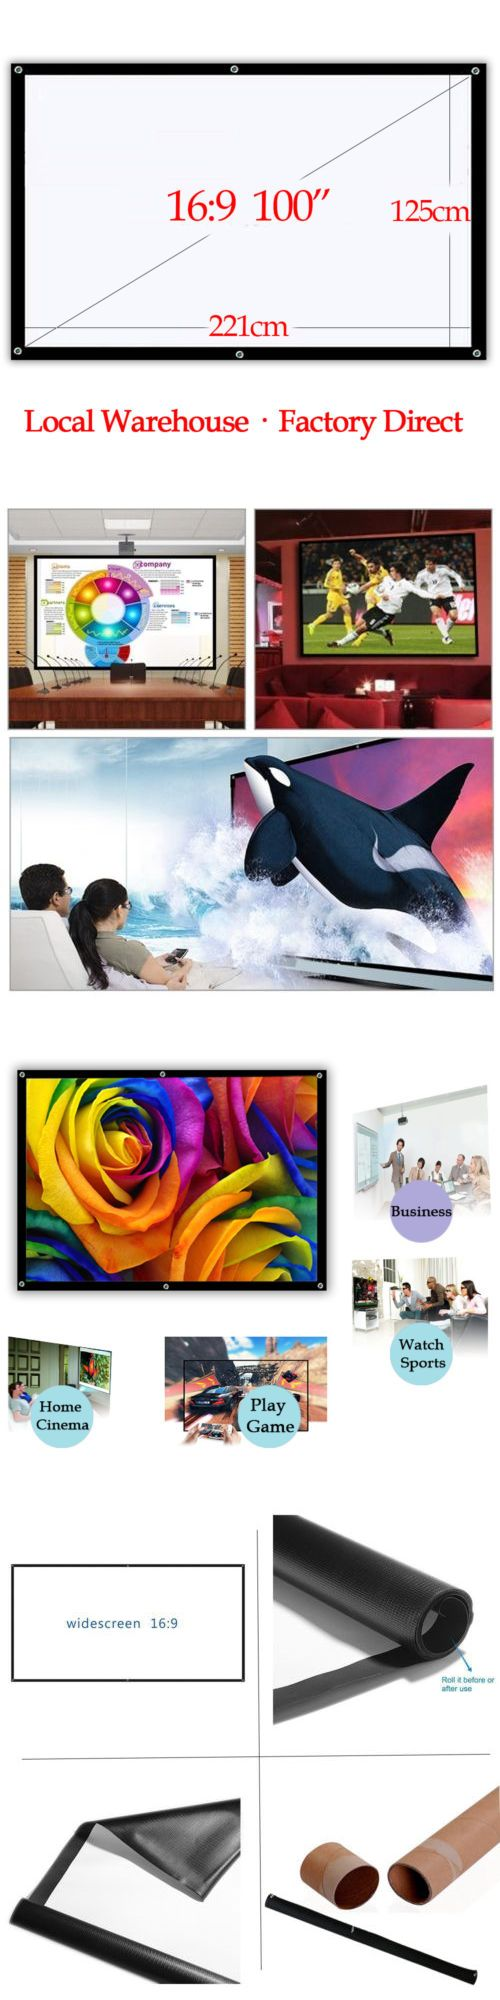 Projection Screens and Material: 100 Portable Projector Screen For Outdoor Backyard Home Cinema 16:9 Hd Movies -> BUY IT NOW ONLY: $36.99 on eBay!